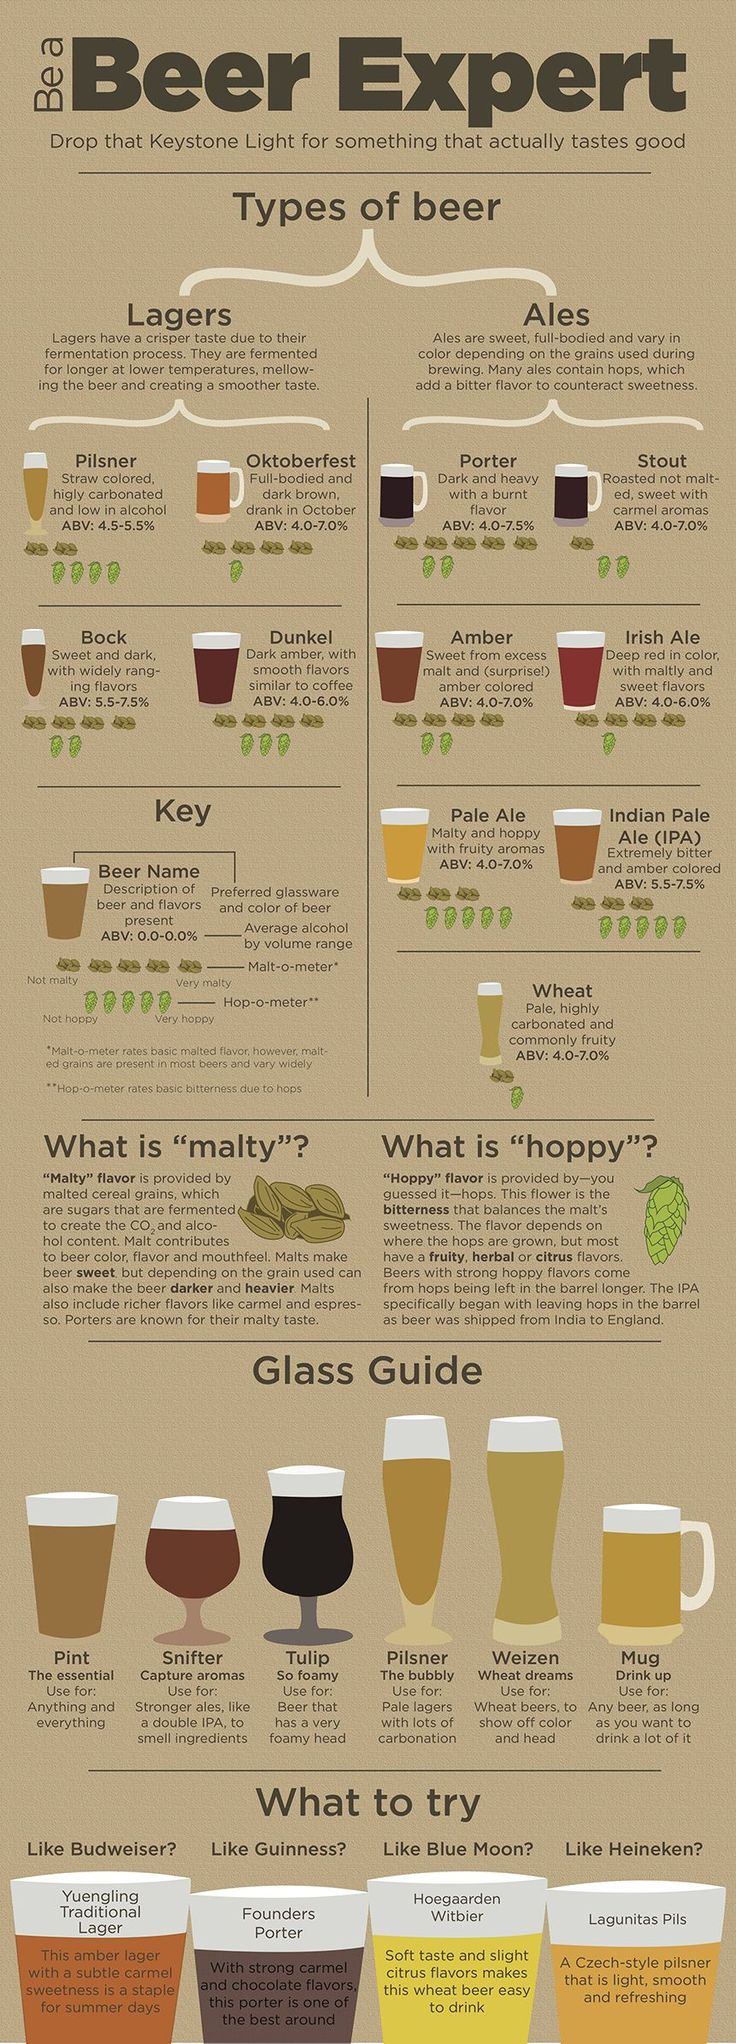 Infographic provides guidance for non-craft beer drinkers